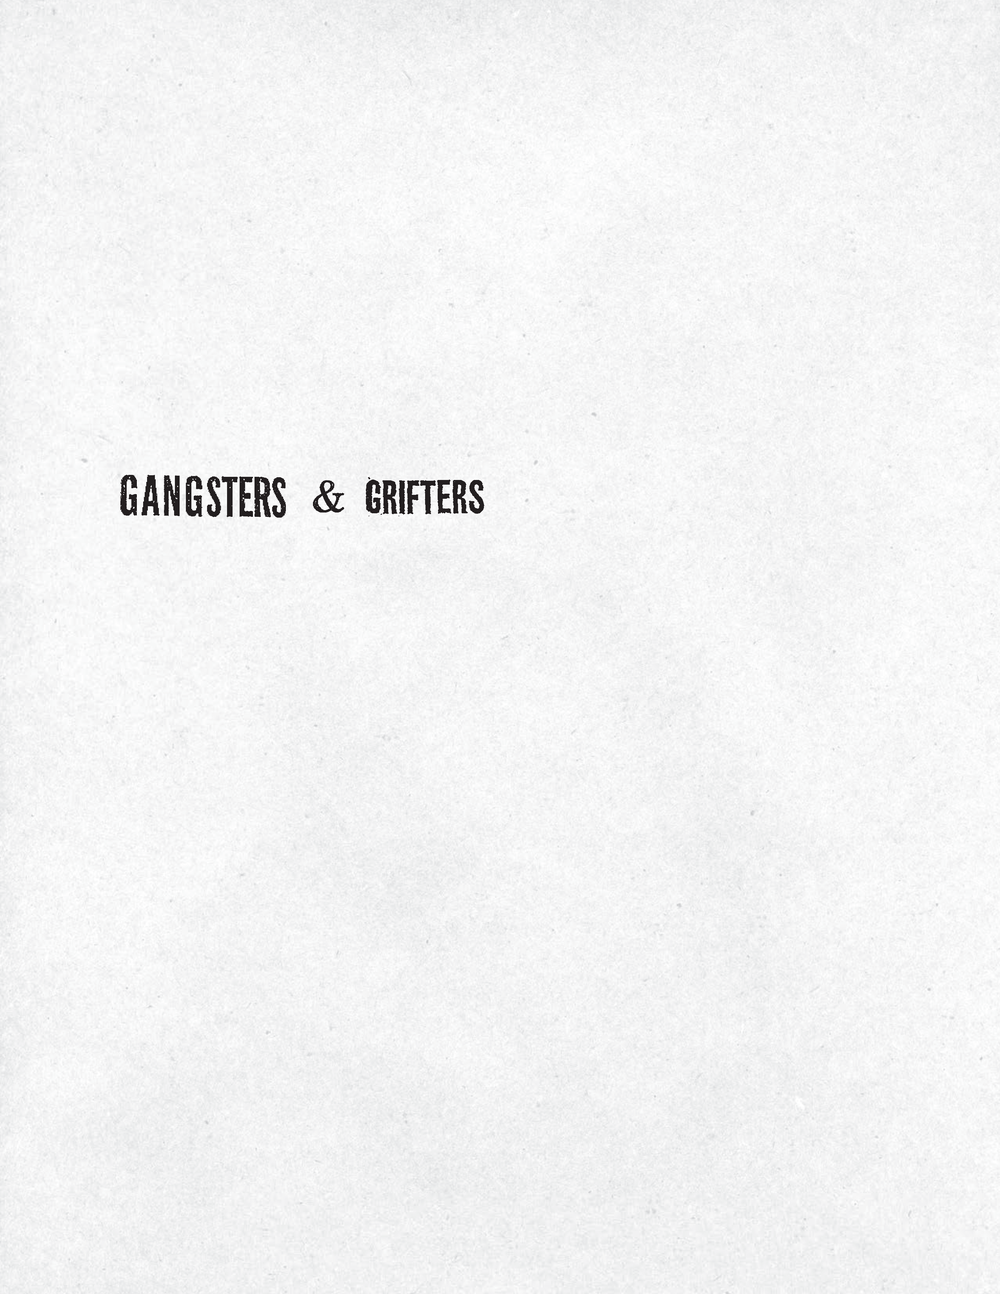 Gangsters & Grifters_Page_06.png